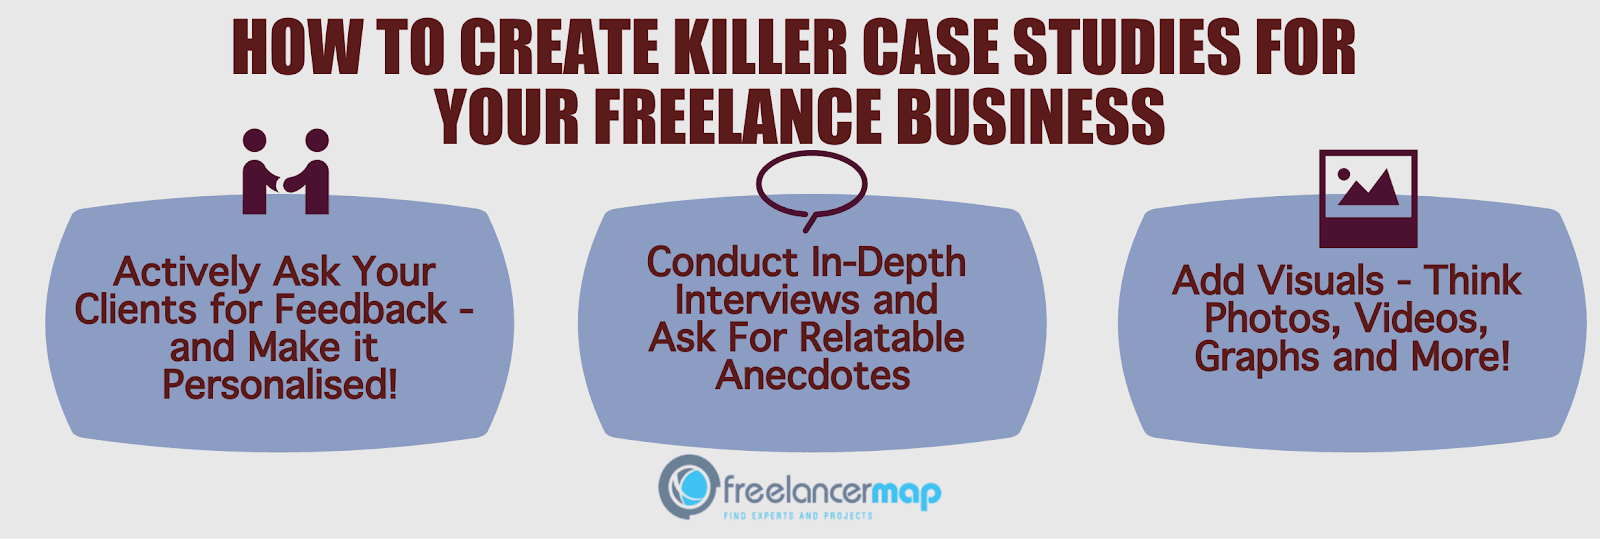 How to write case studies for your freelance business